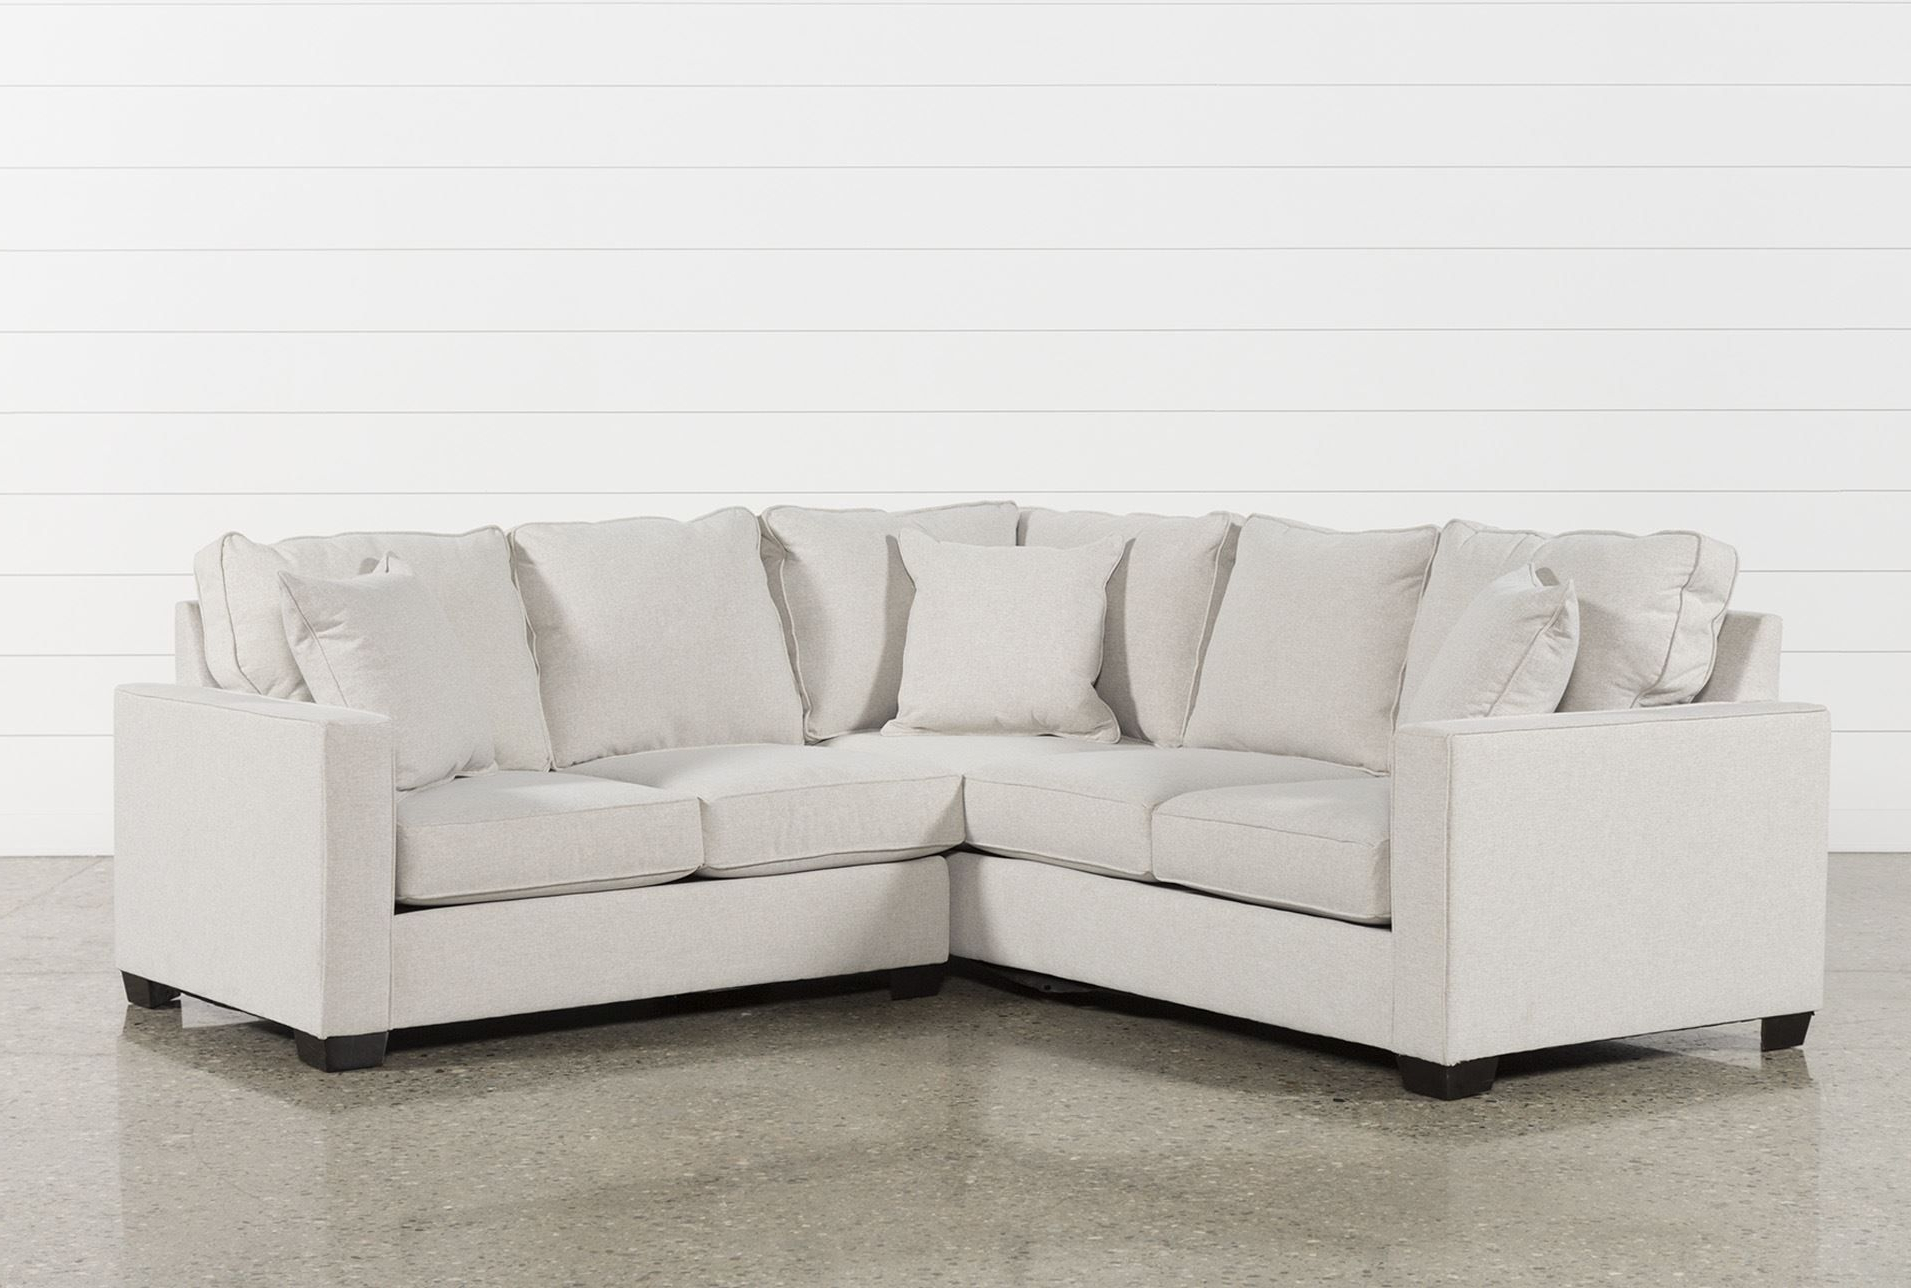 Raphael Ii Flax 2 Piece Sectionalw/raf Loveseat, Beige, Sofas Inside Popular Marissa Ii 3 Piece Sectionals (View 11 of 20)